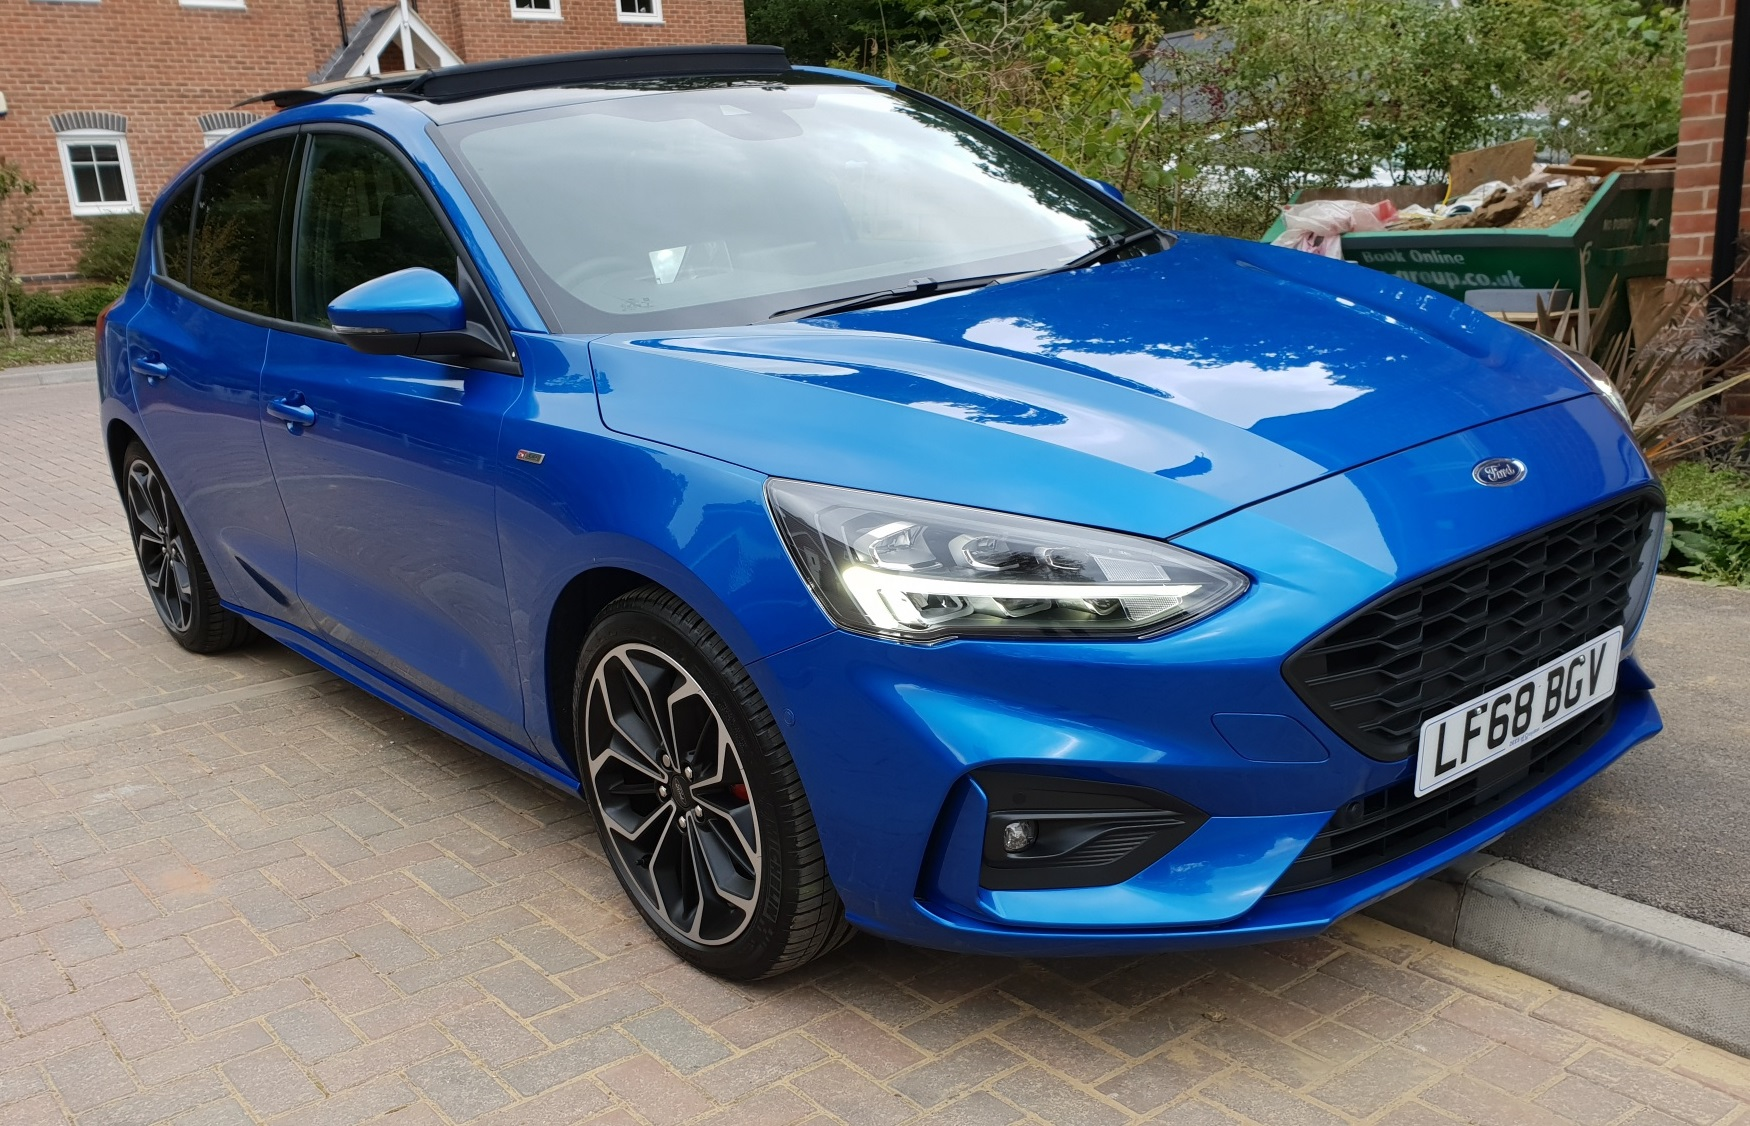 Ford Focus 1 5 Ecoblue 120 St Line X Diesel Automatic 5 Door Hatchback 2018 At Ford Wimbledon